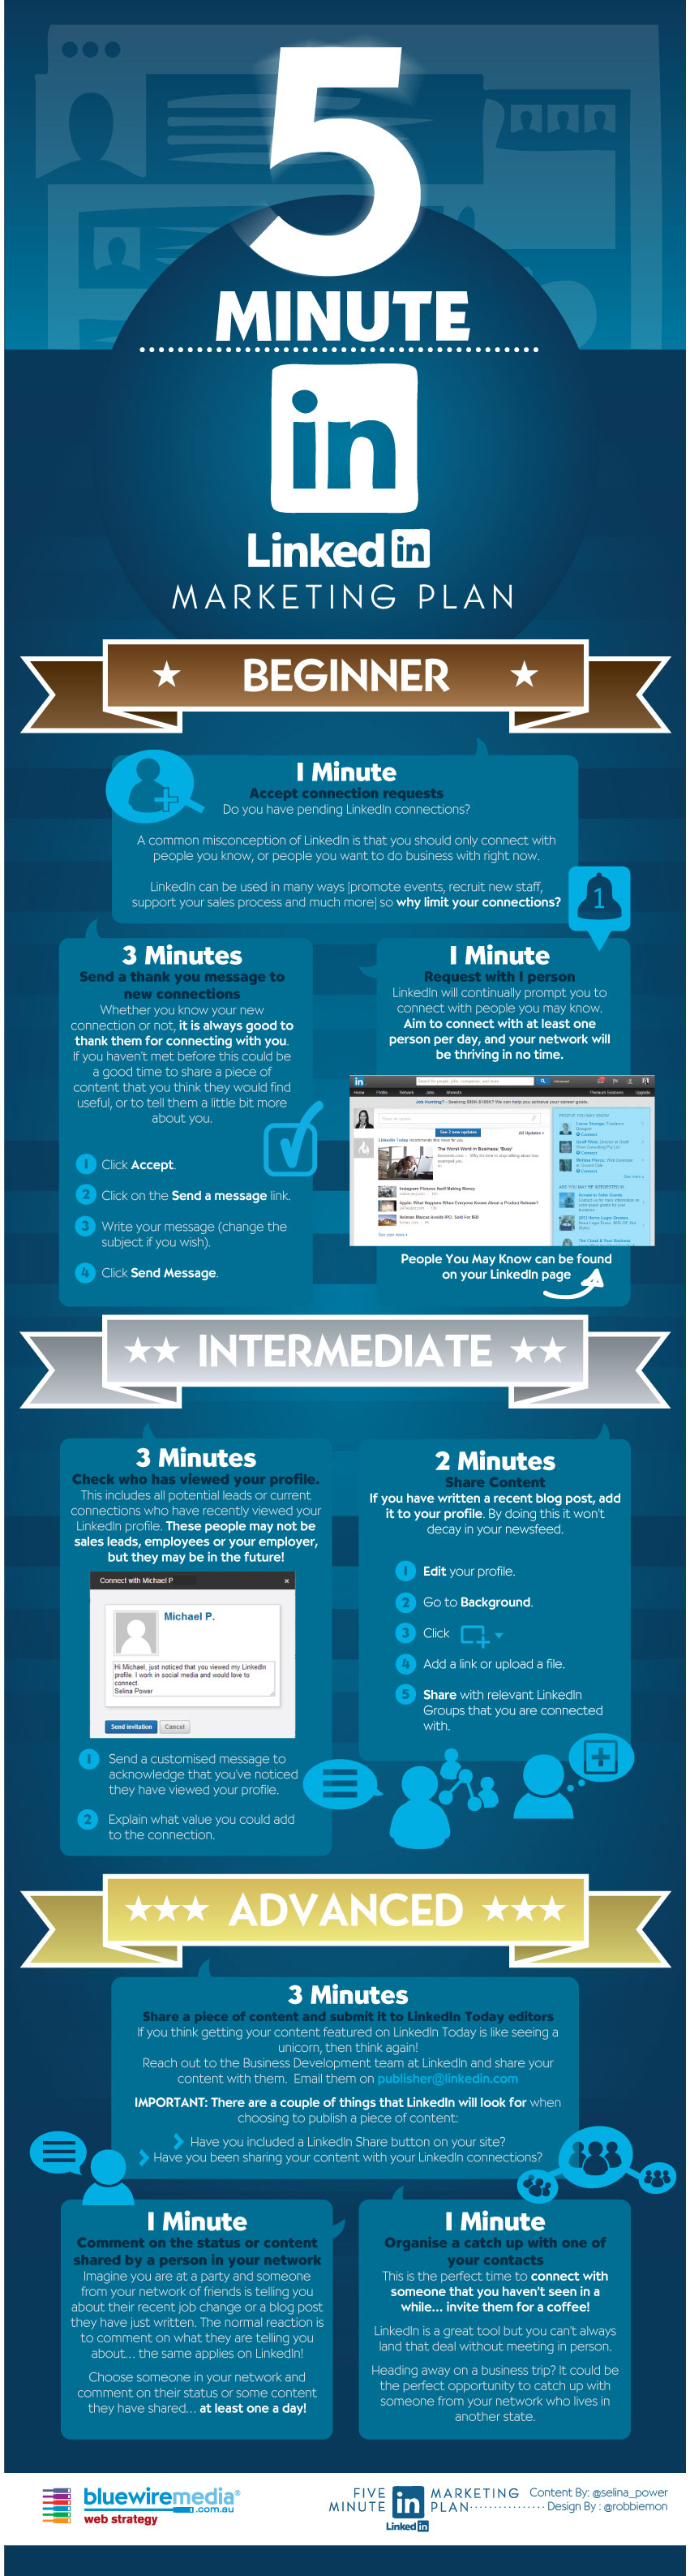 Master In LinkedIn Marketing in 5 minutes